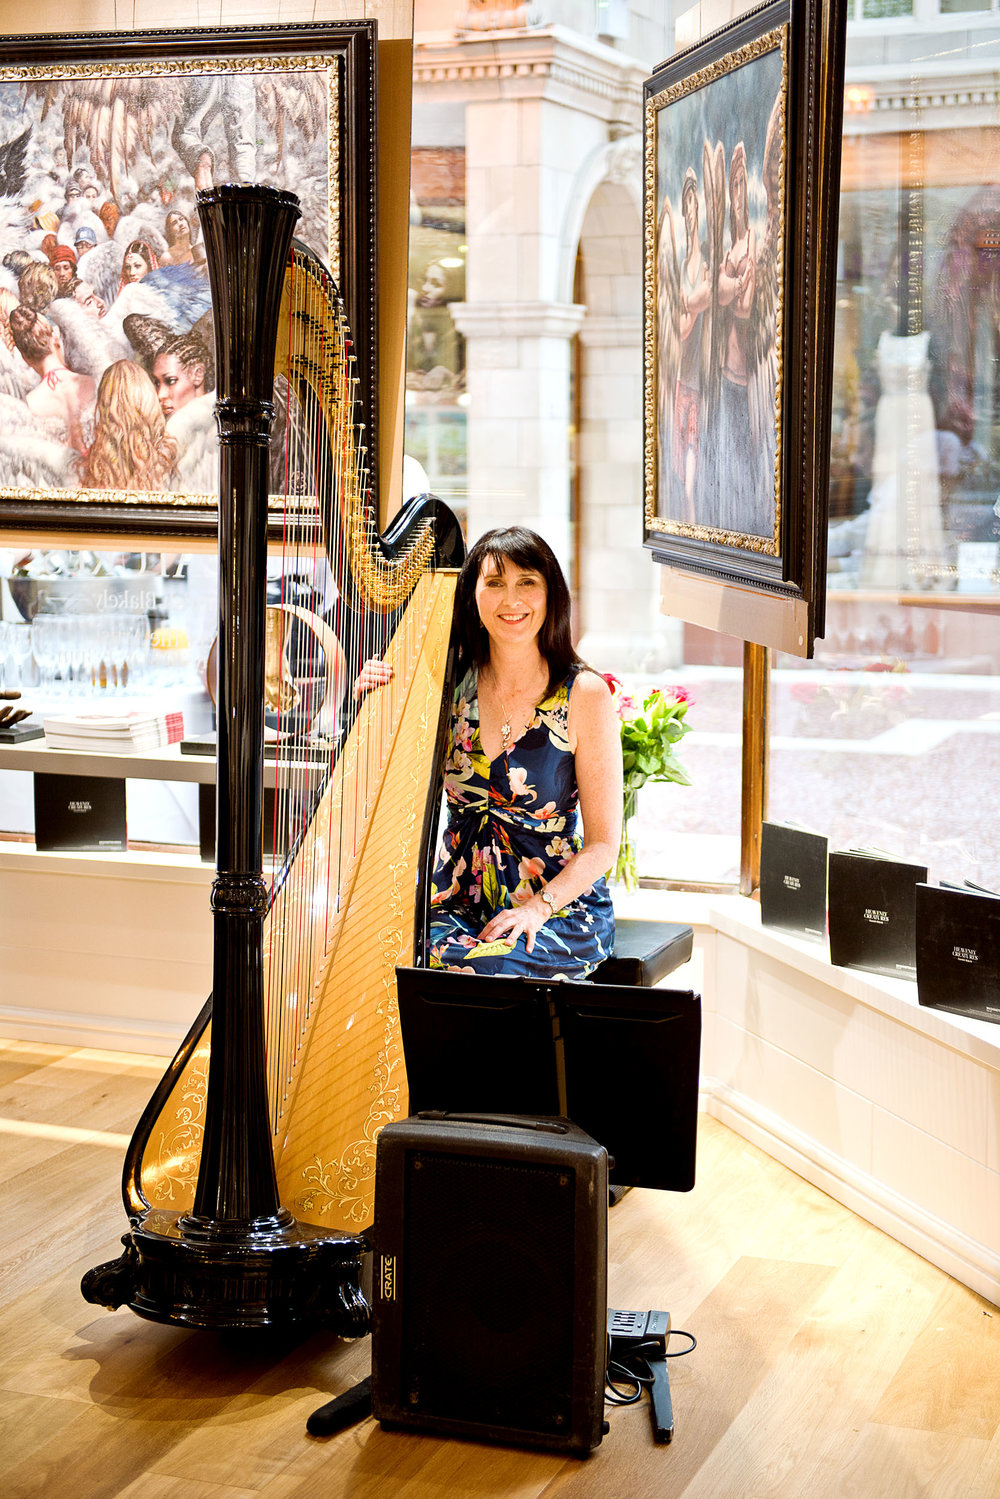 Oona plays at many events, in this case the opening of a gallery in Chester